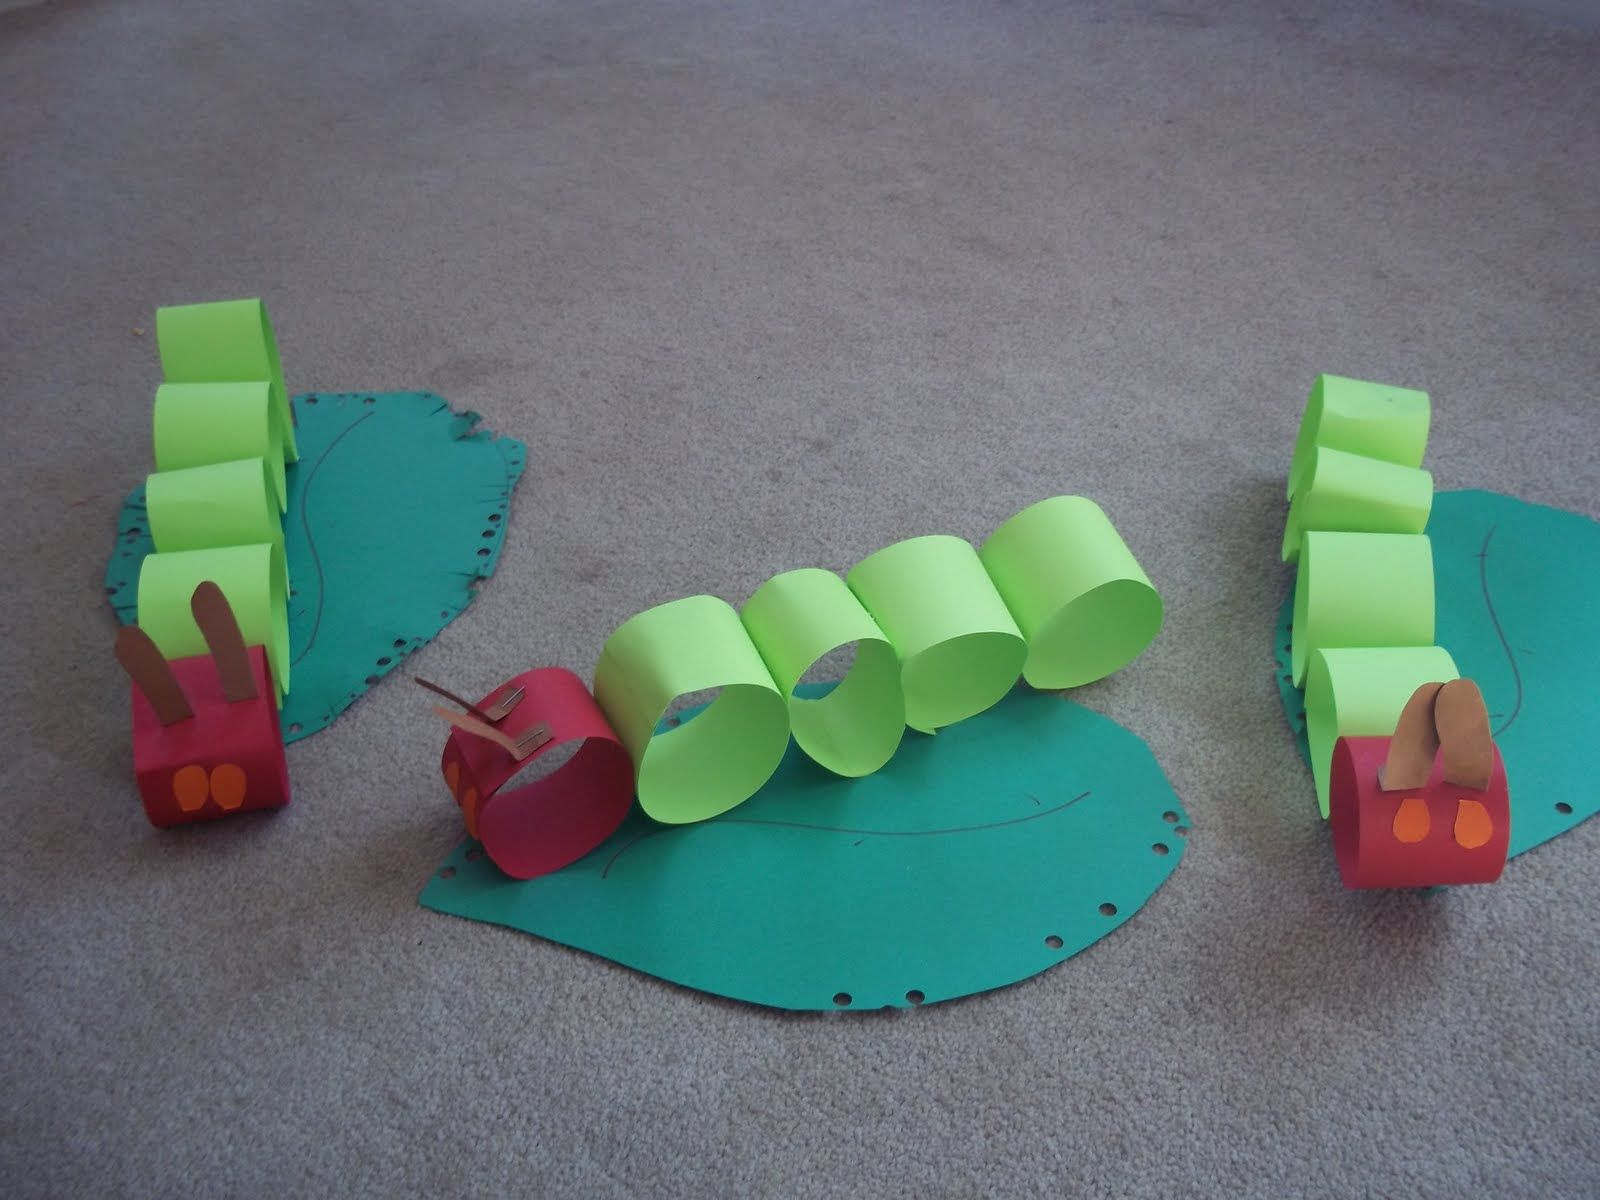 Eric Carle Caterpillars A Simple Art Project Made With Colored Paper Strips This Is Fun Idea For Very Hungry Caterpillar Day March